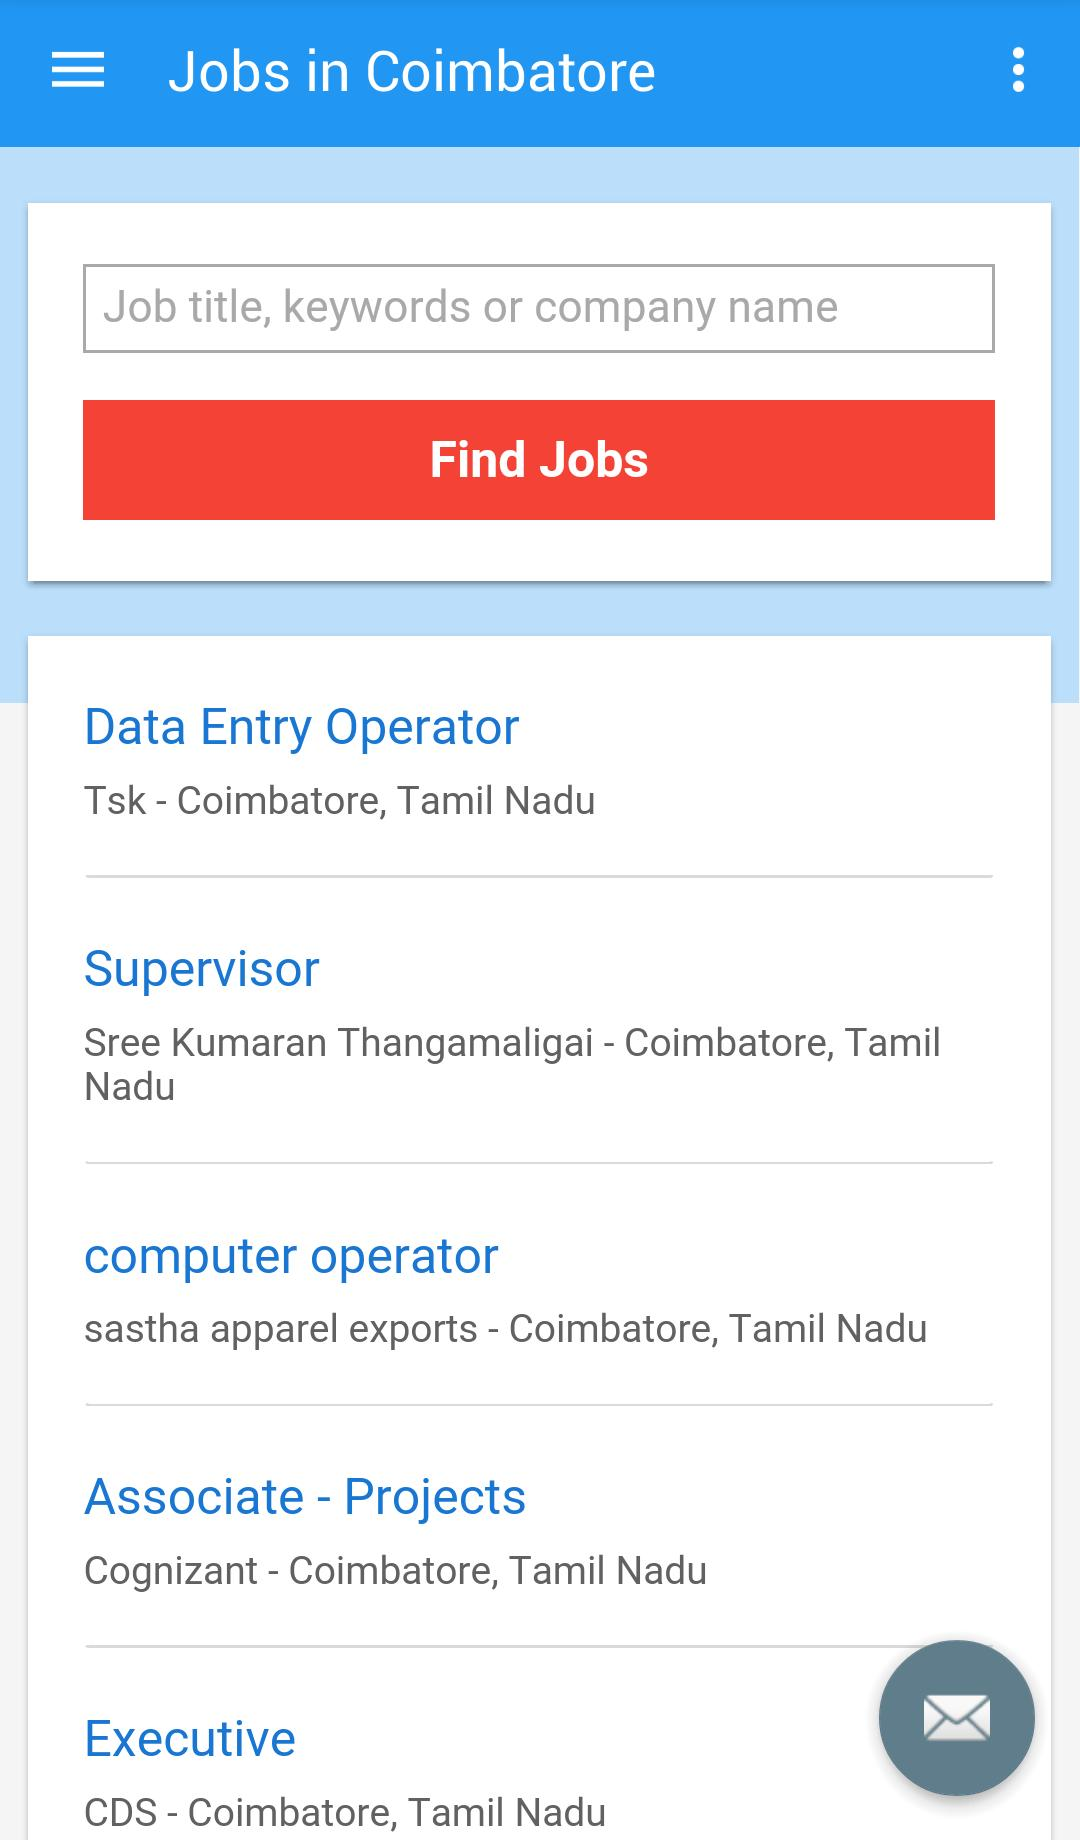 Jobs in Coimbatore, India for Android - APK Download